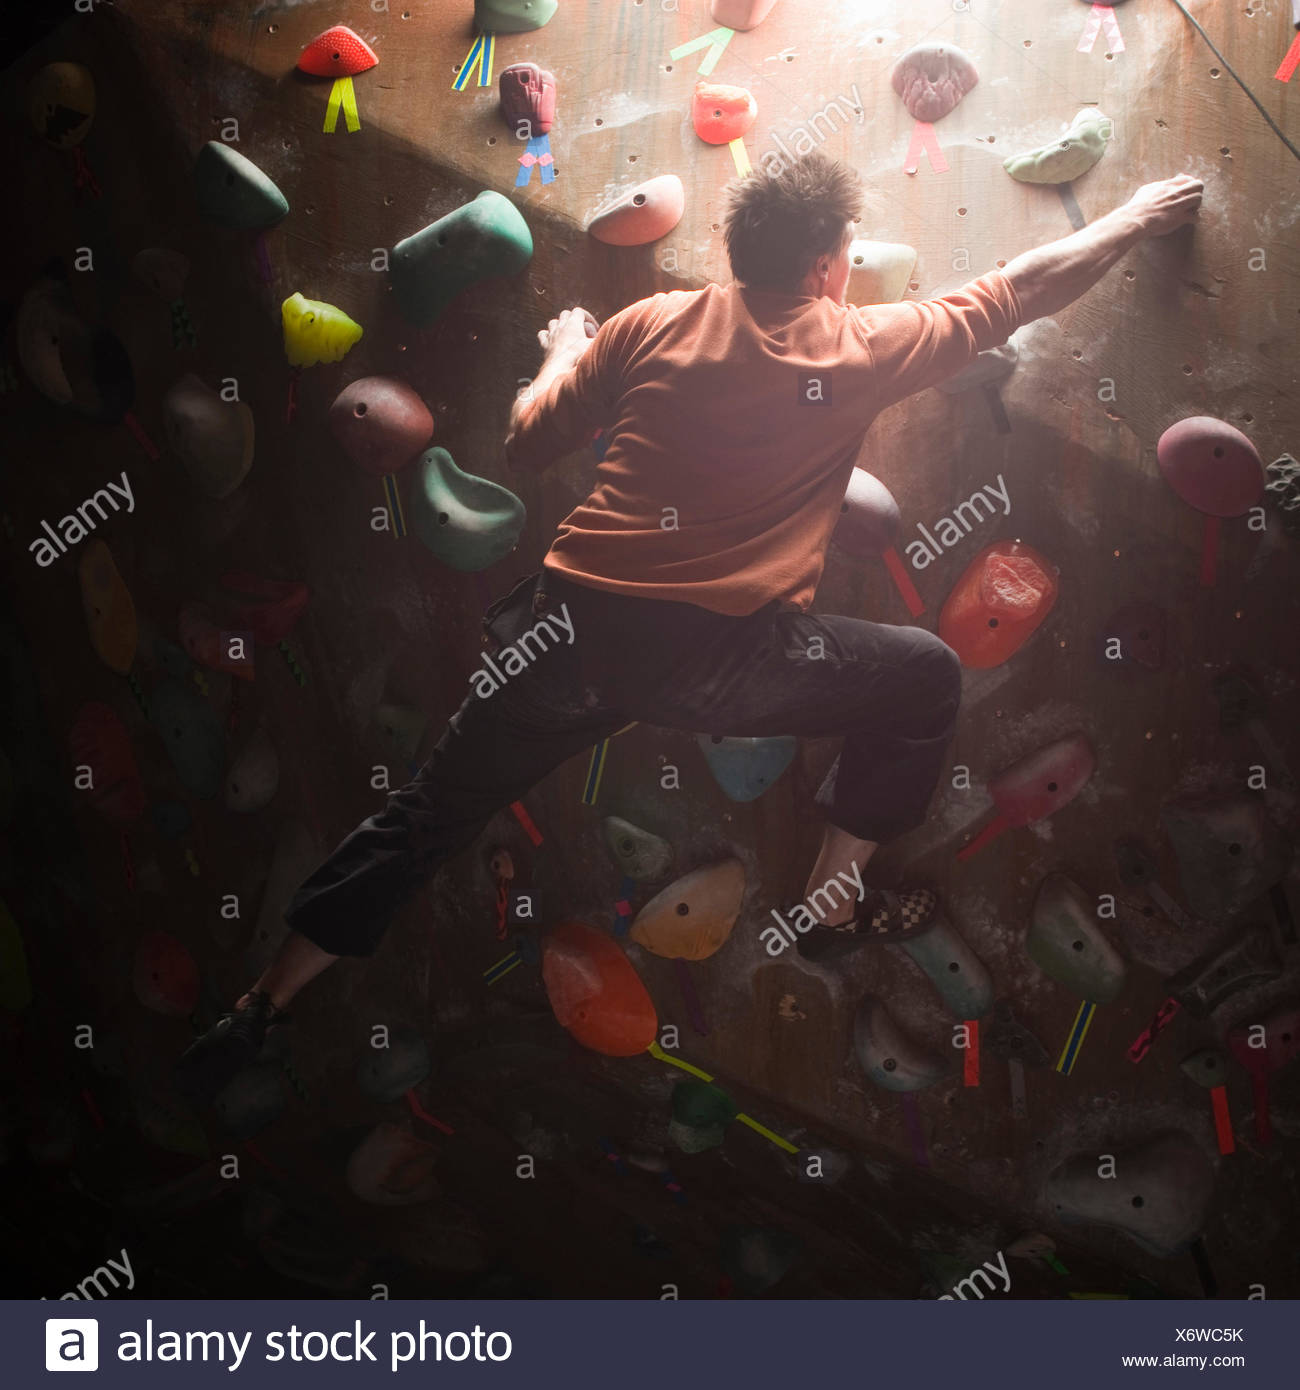 USA, Utah, Sandy, man on indoor climbing wall - Stock Image